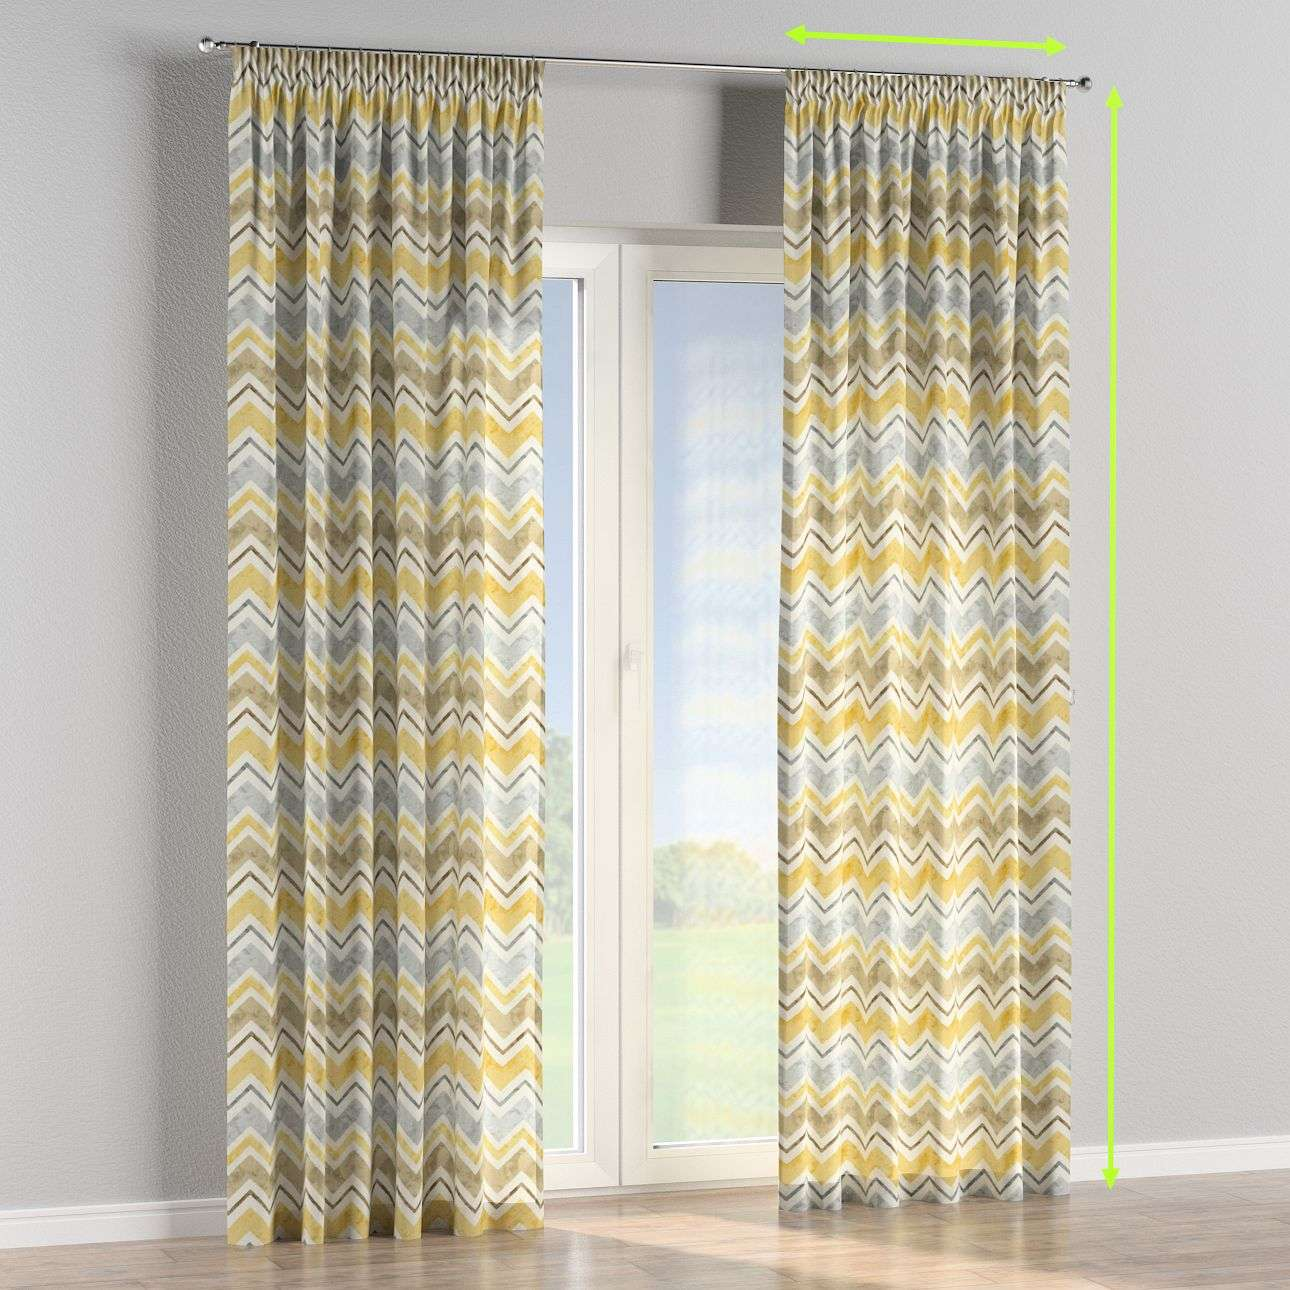 Pencil pleat curtains in collection Acapulco, fabric: 141-39